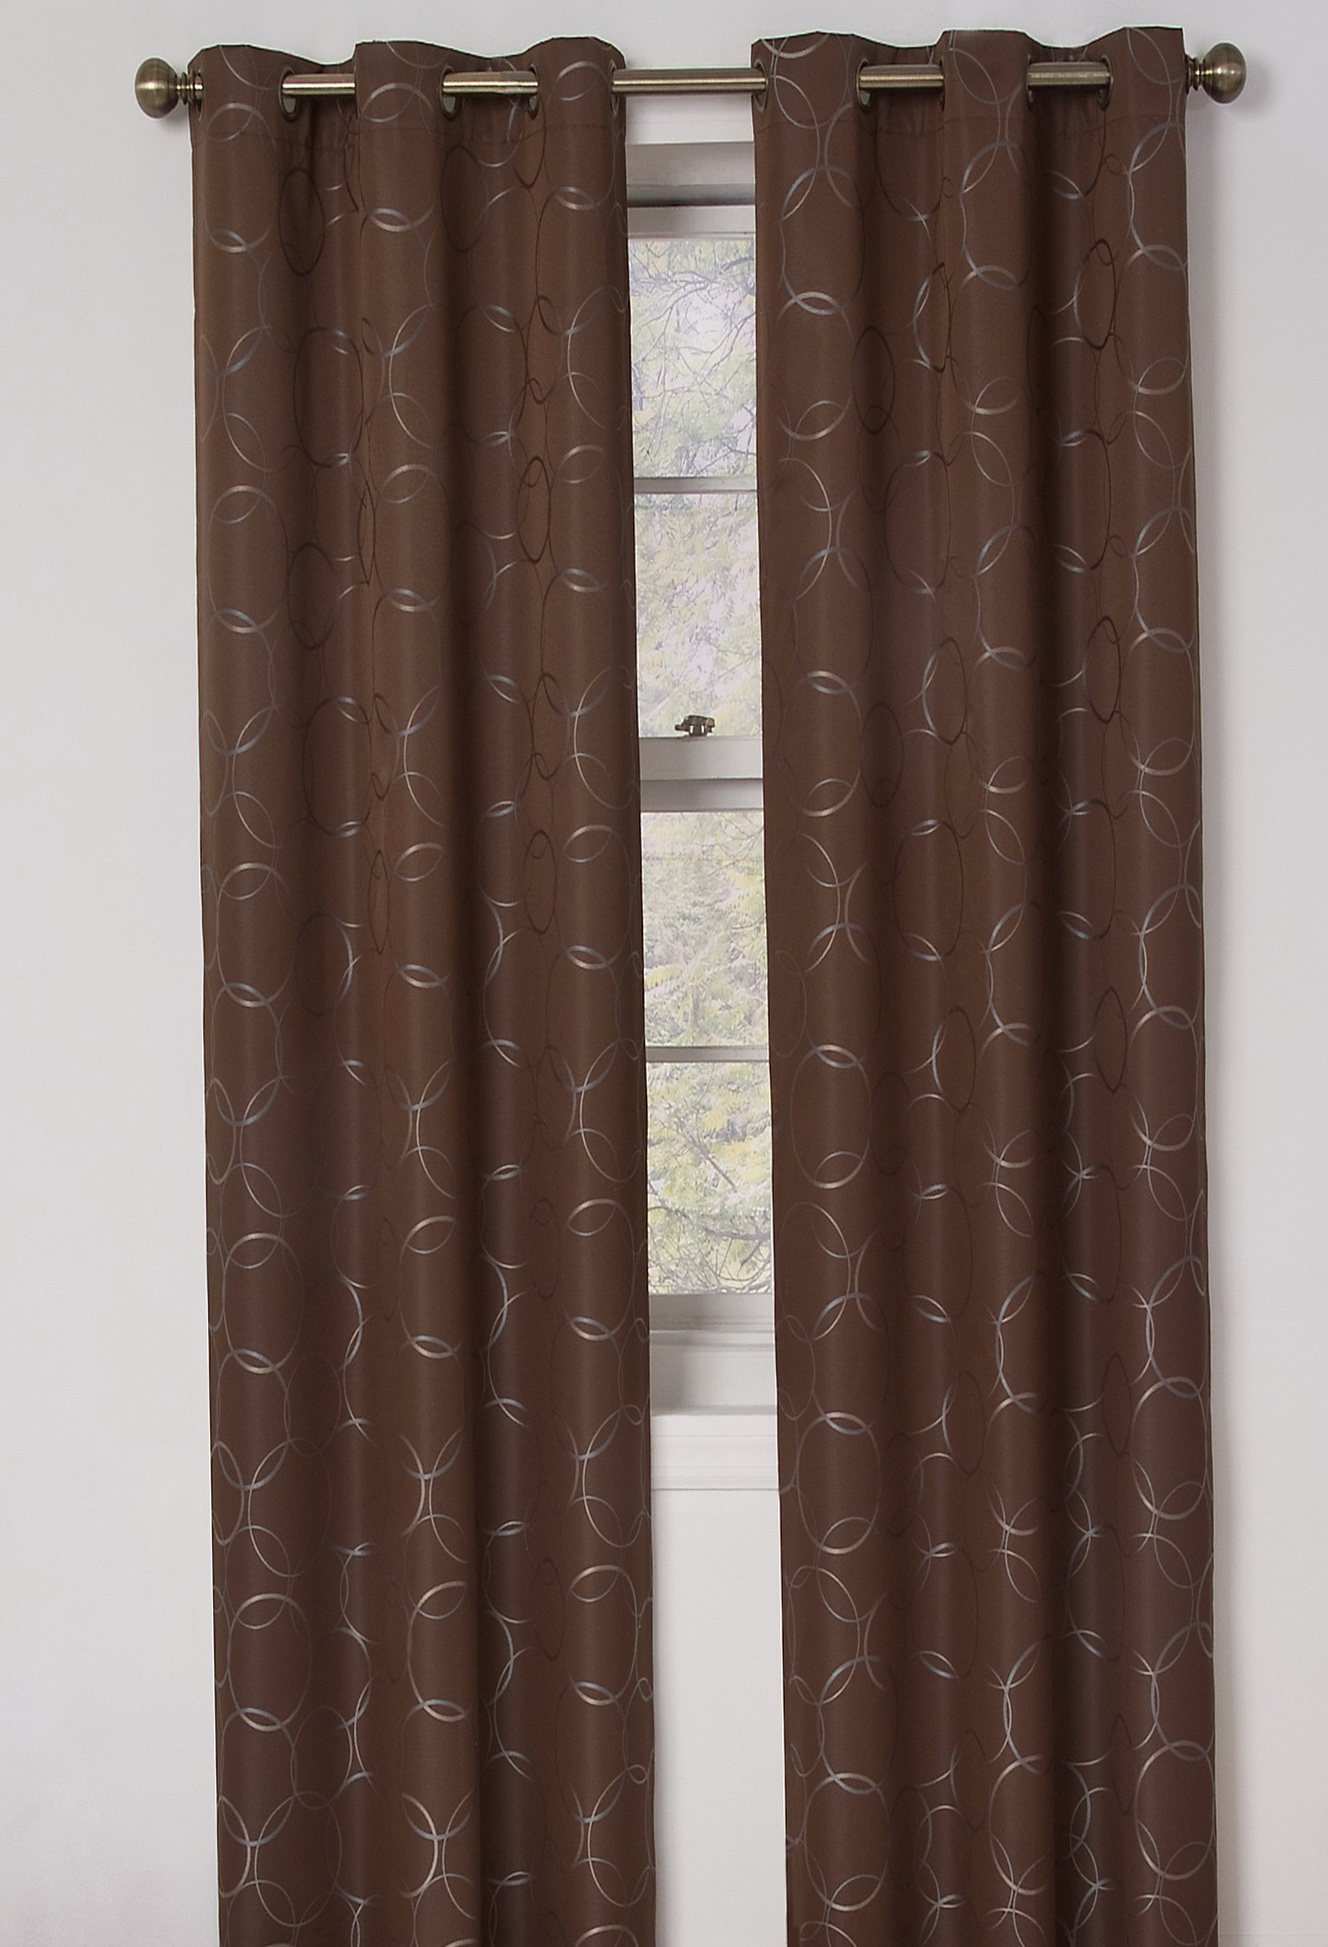 Blackout Curtain Panels With Grommets Home Design Ideas